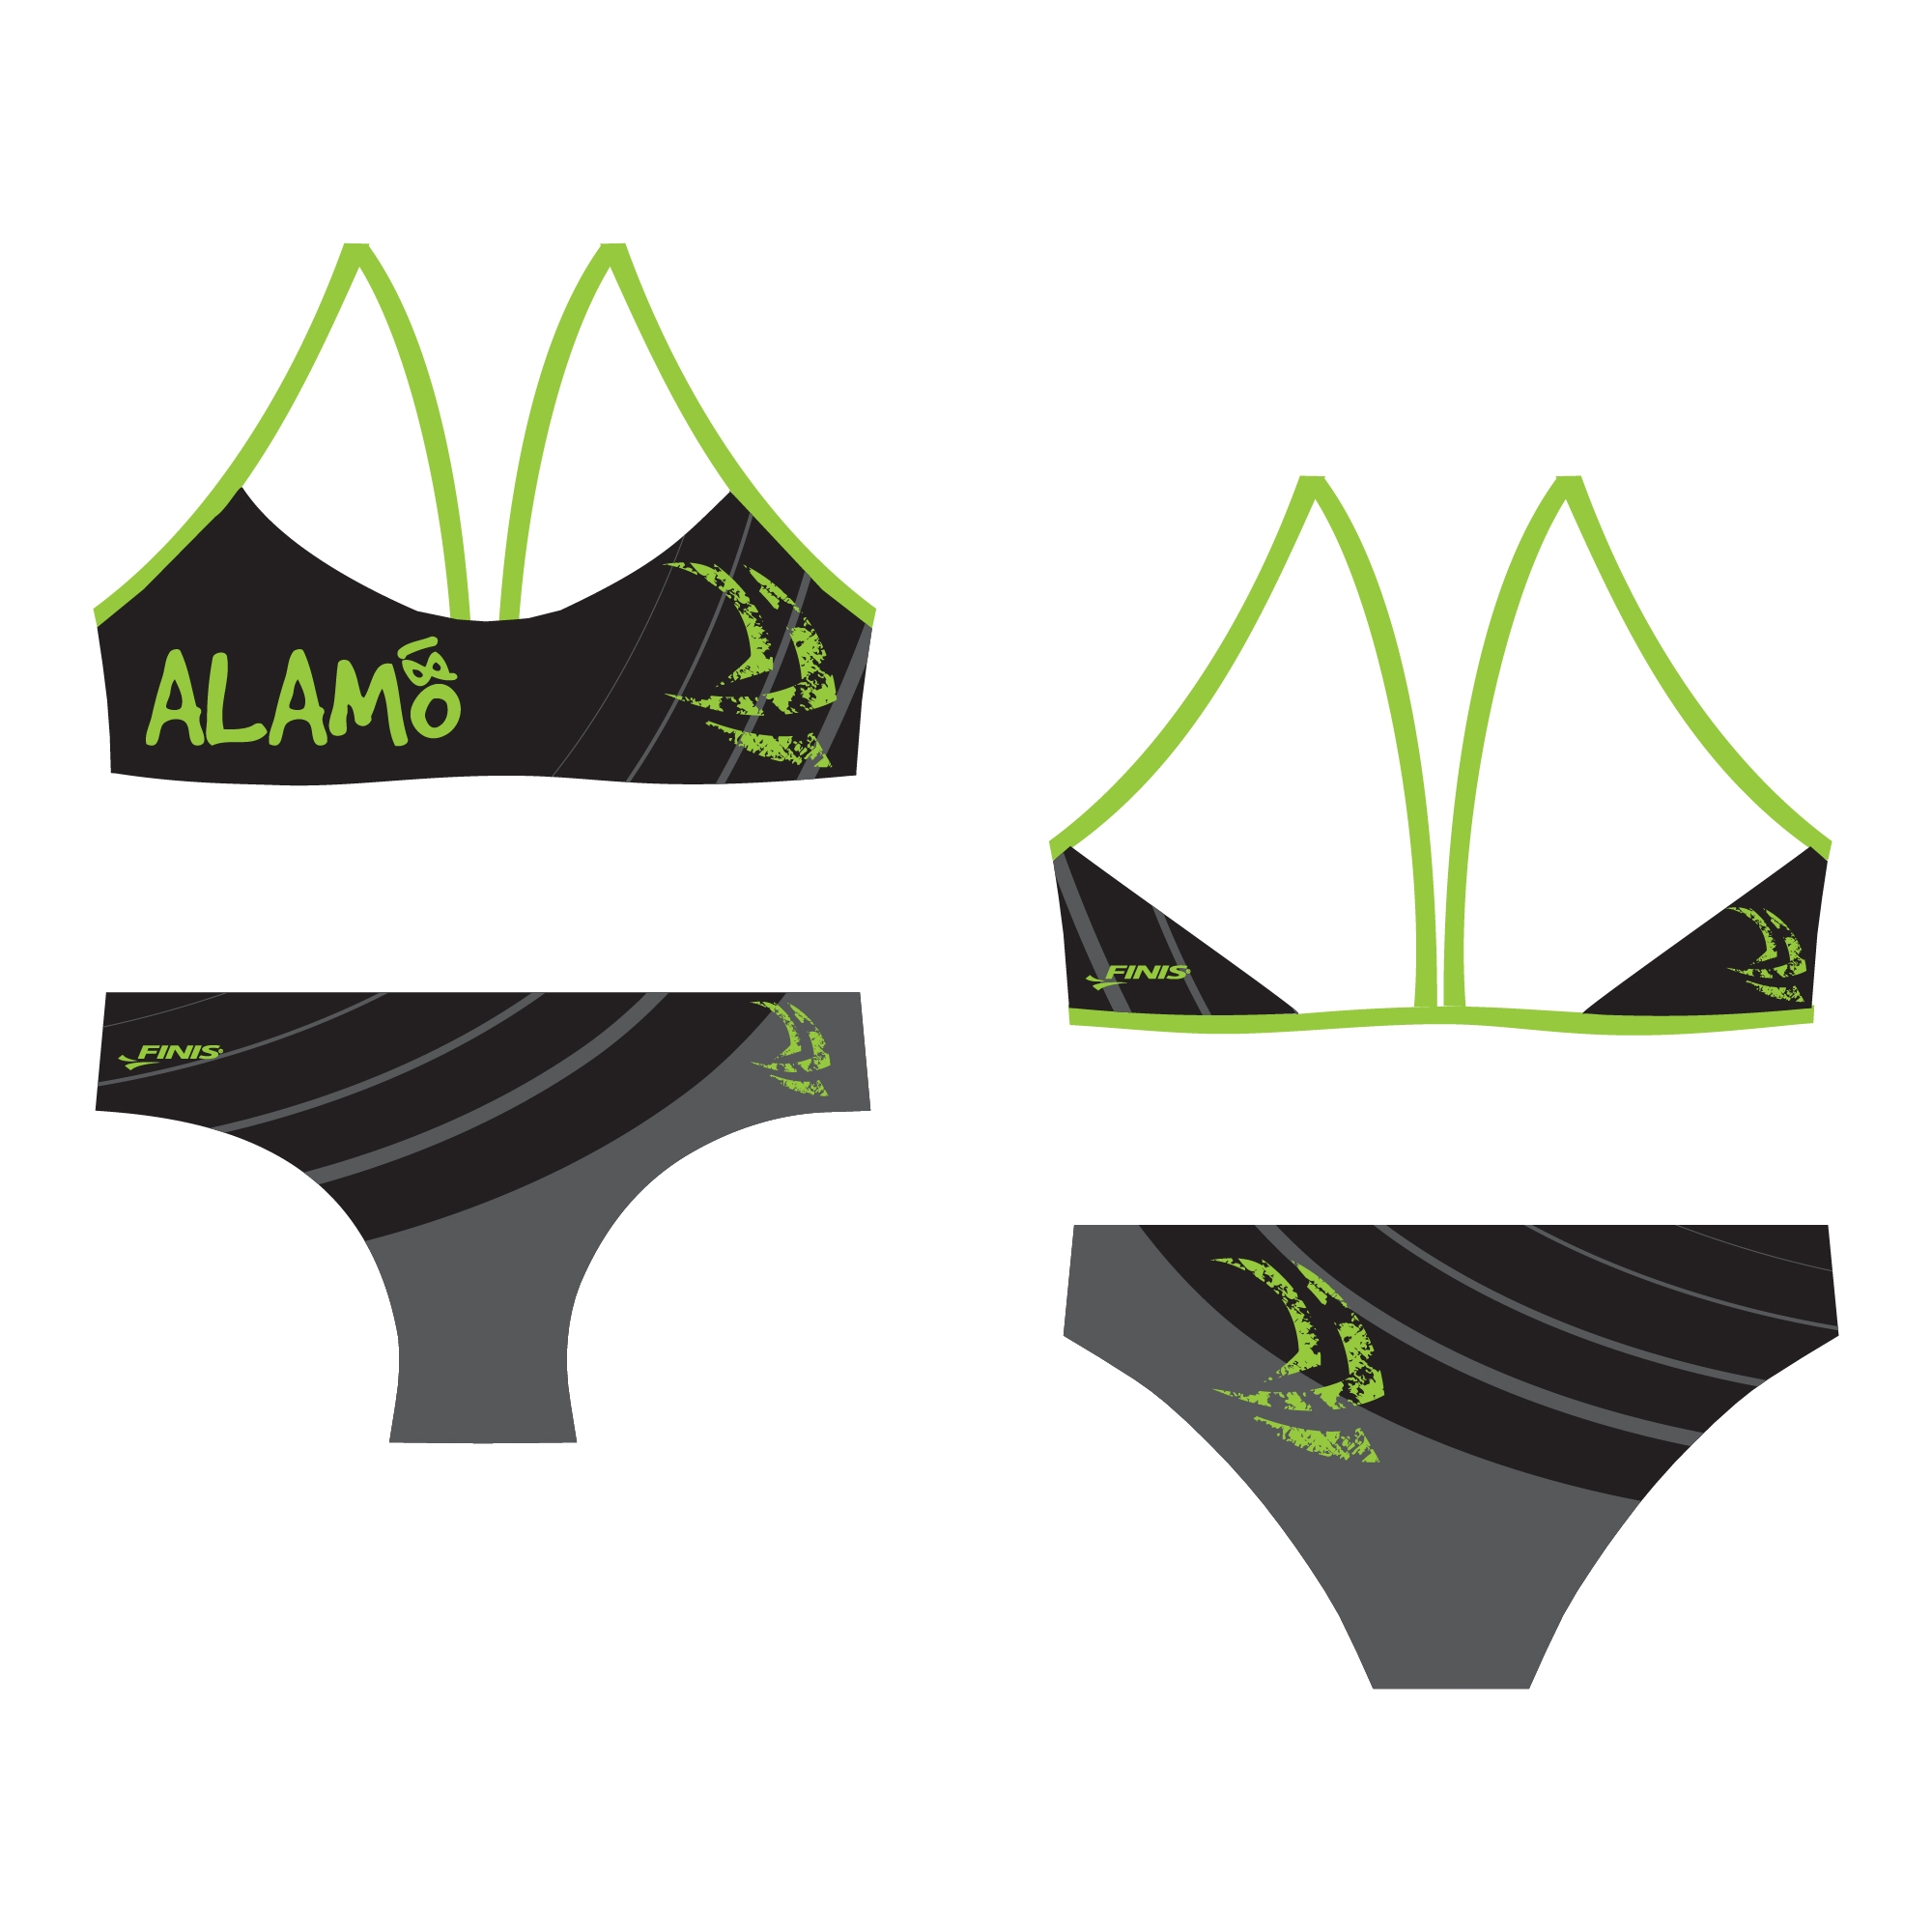 Alamo swim club custom finis bikini open back proof in lime green, black, and gray design.